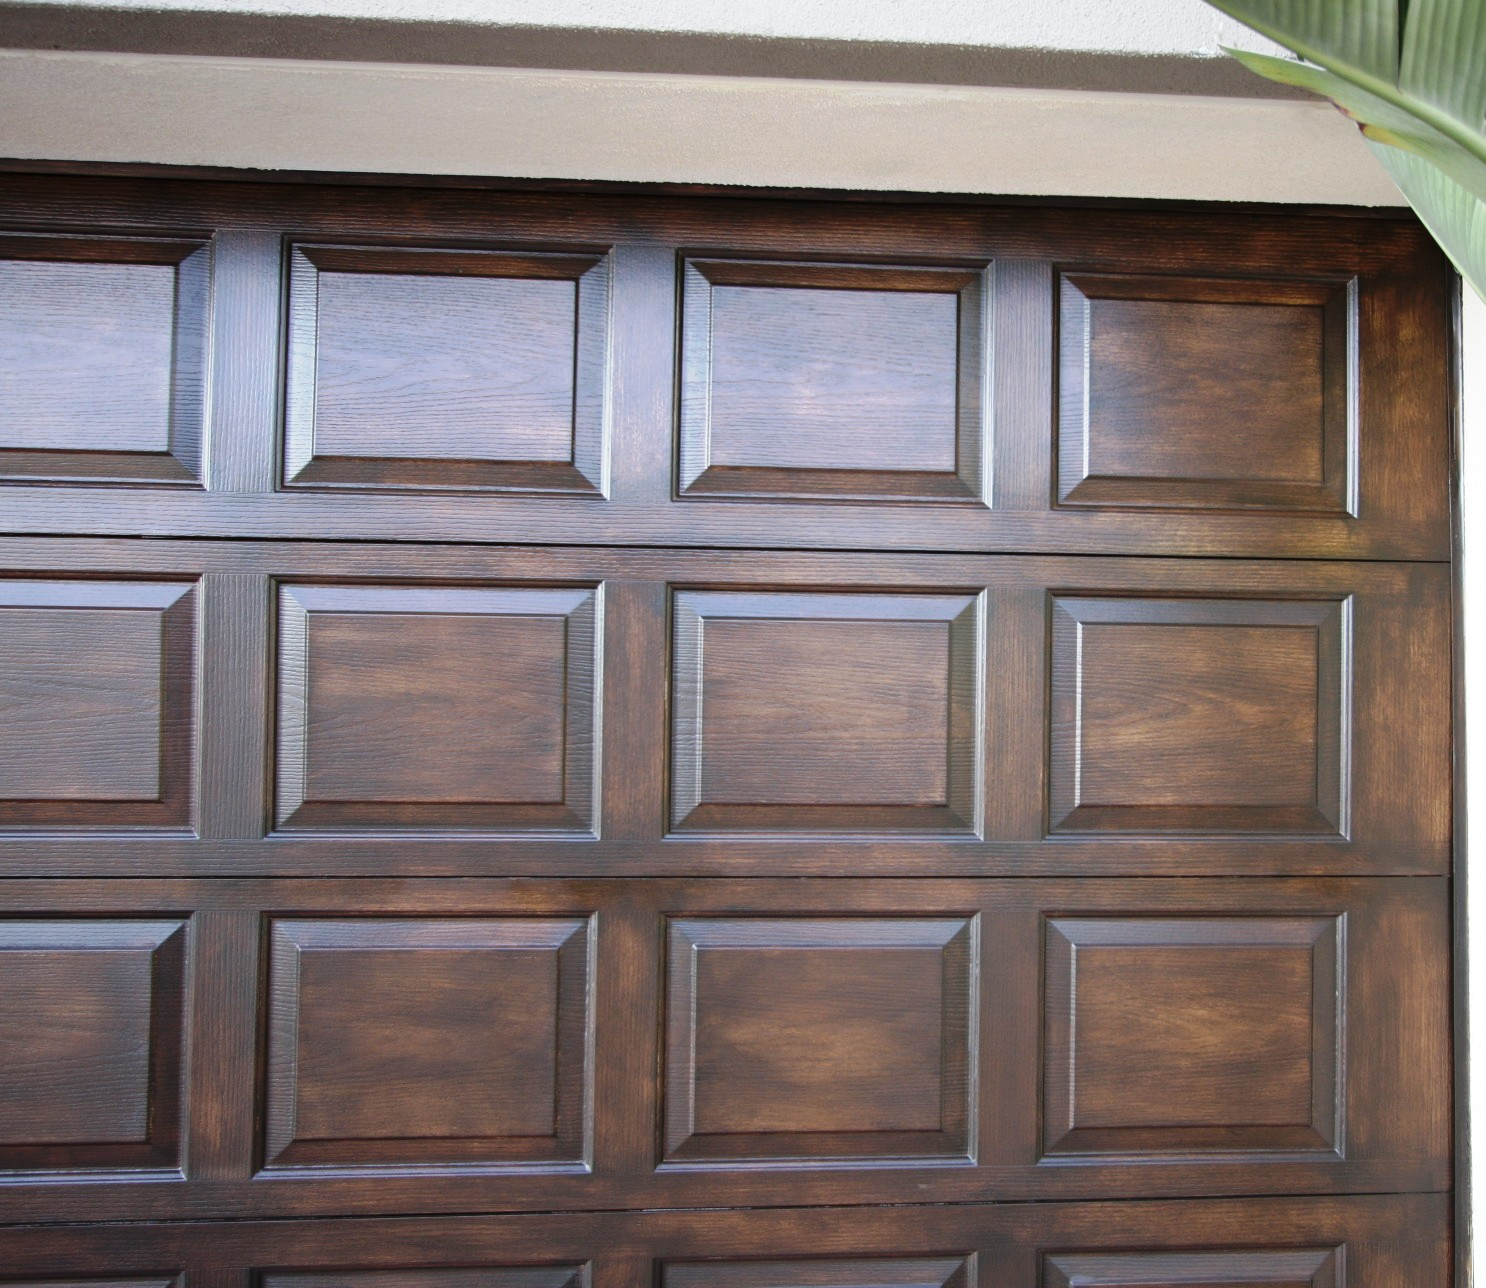 Faux wood painted garage doors - Faux Garage Doors